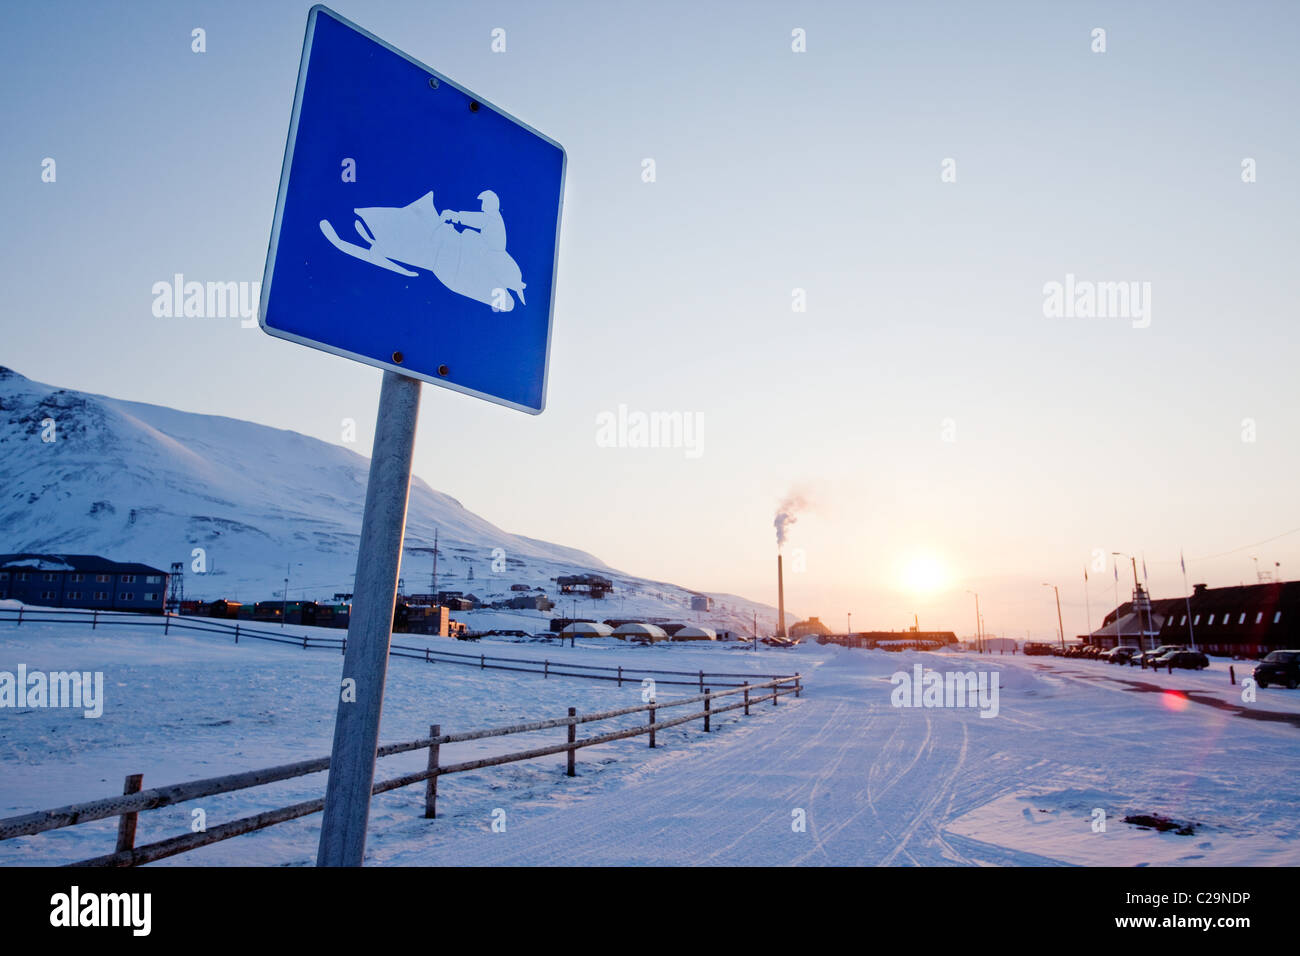 A snowmobile sign in Longyearbyen, Svalbard, Norway - Stock Image